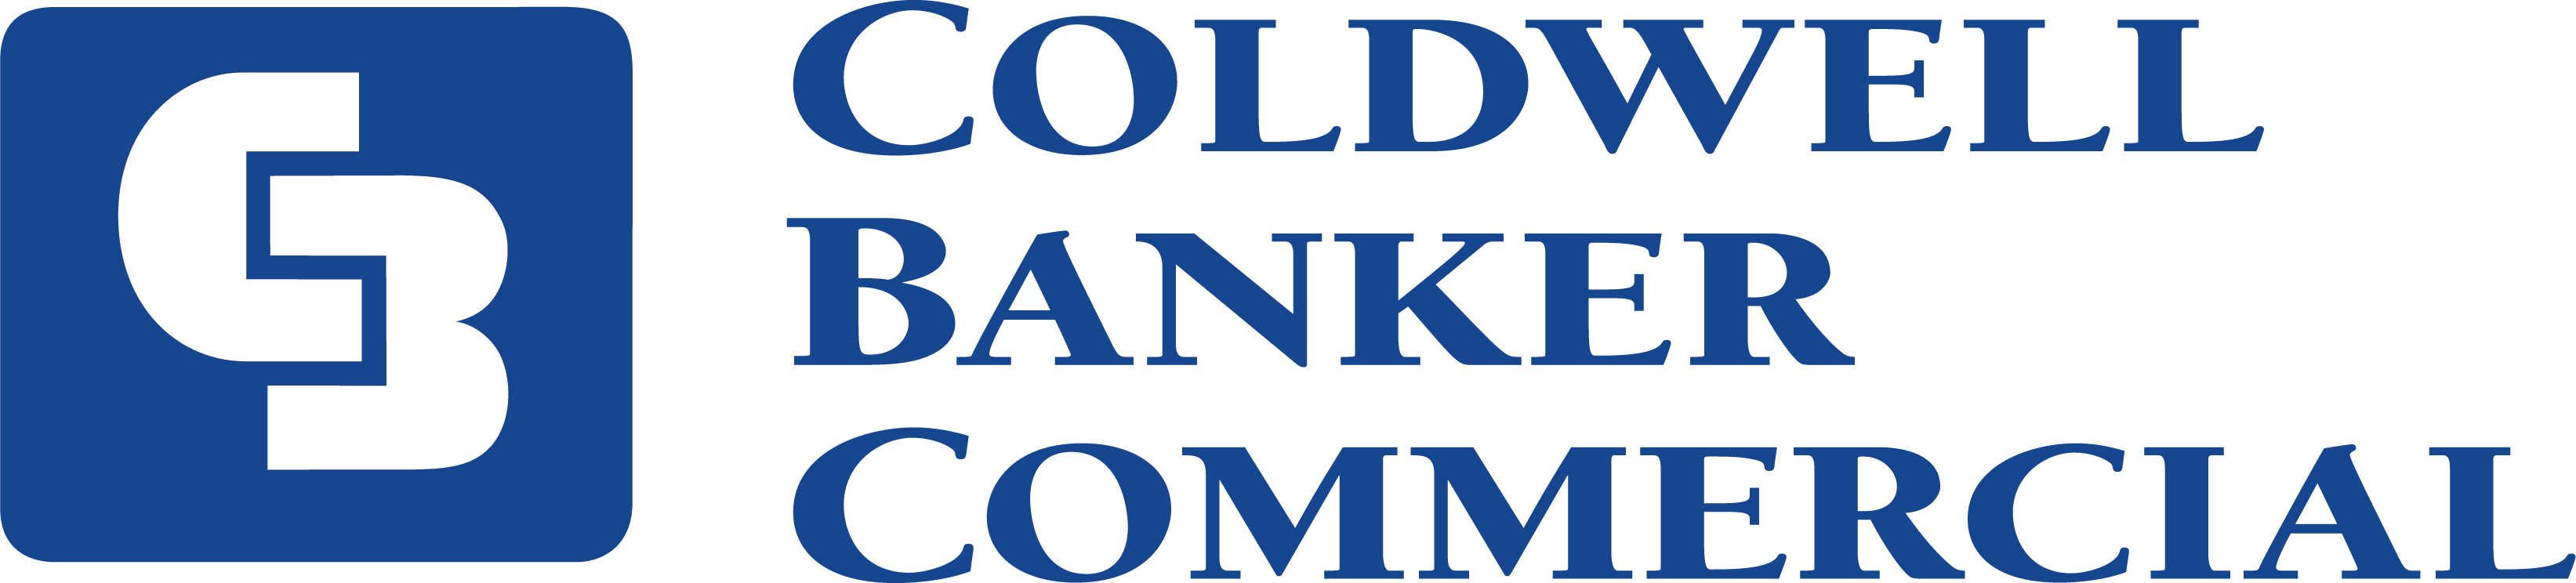 Coldwell Banker Commercial 2021 C5 Exhibitor Logo